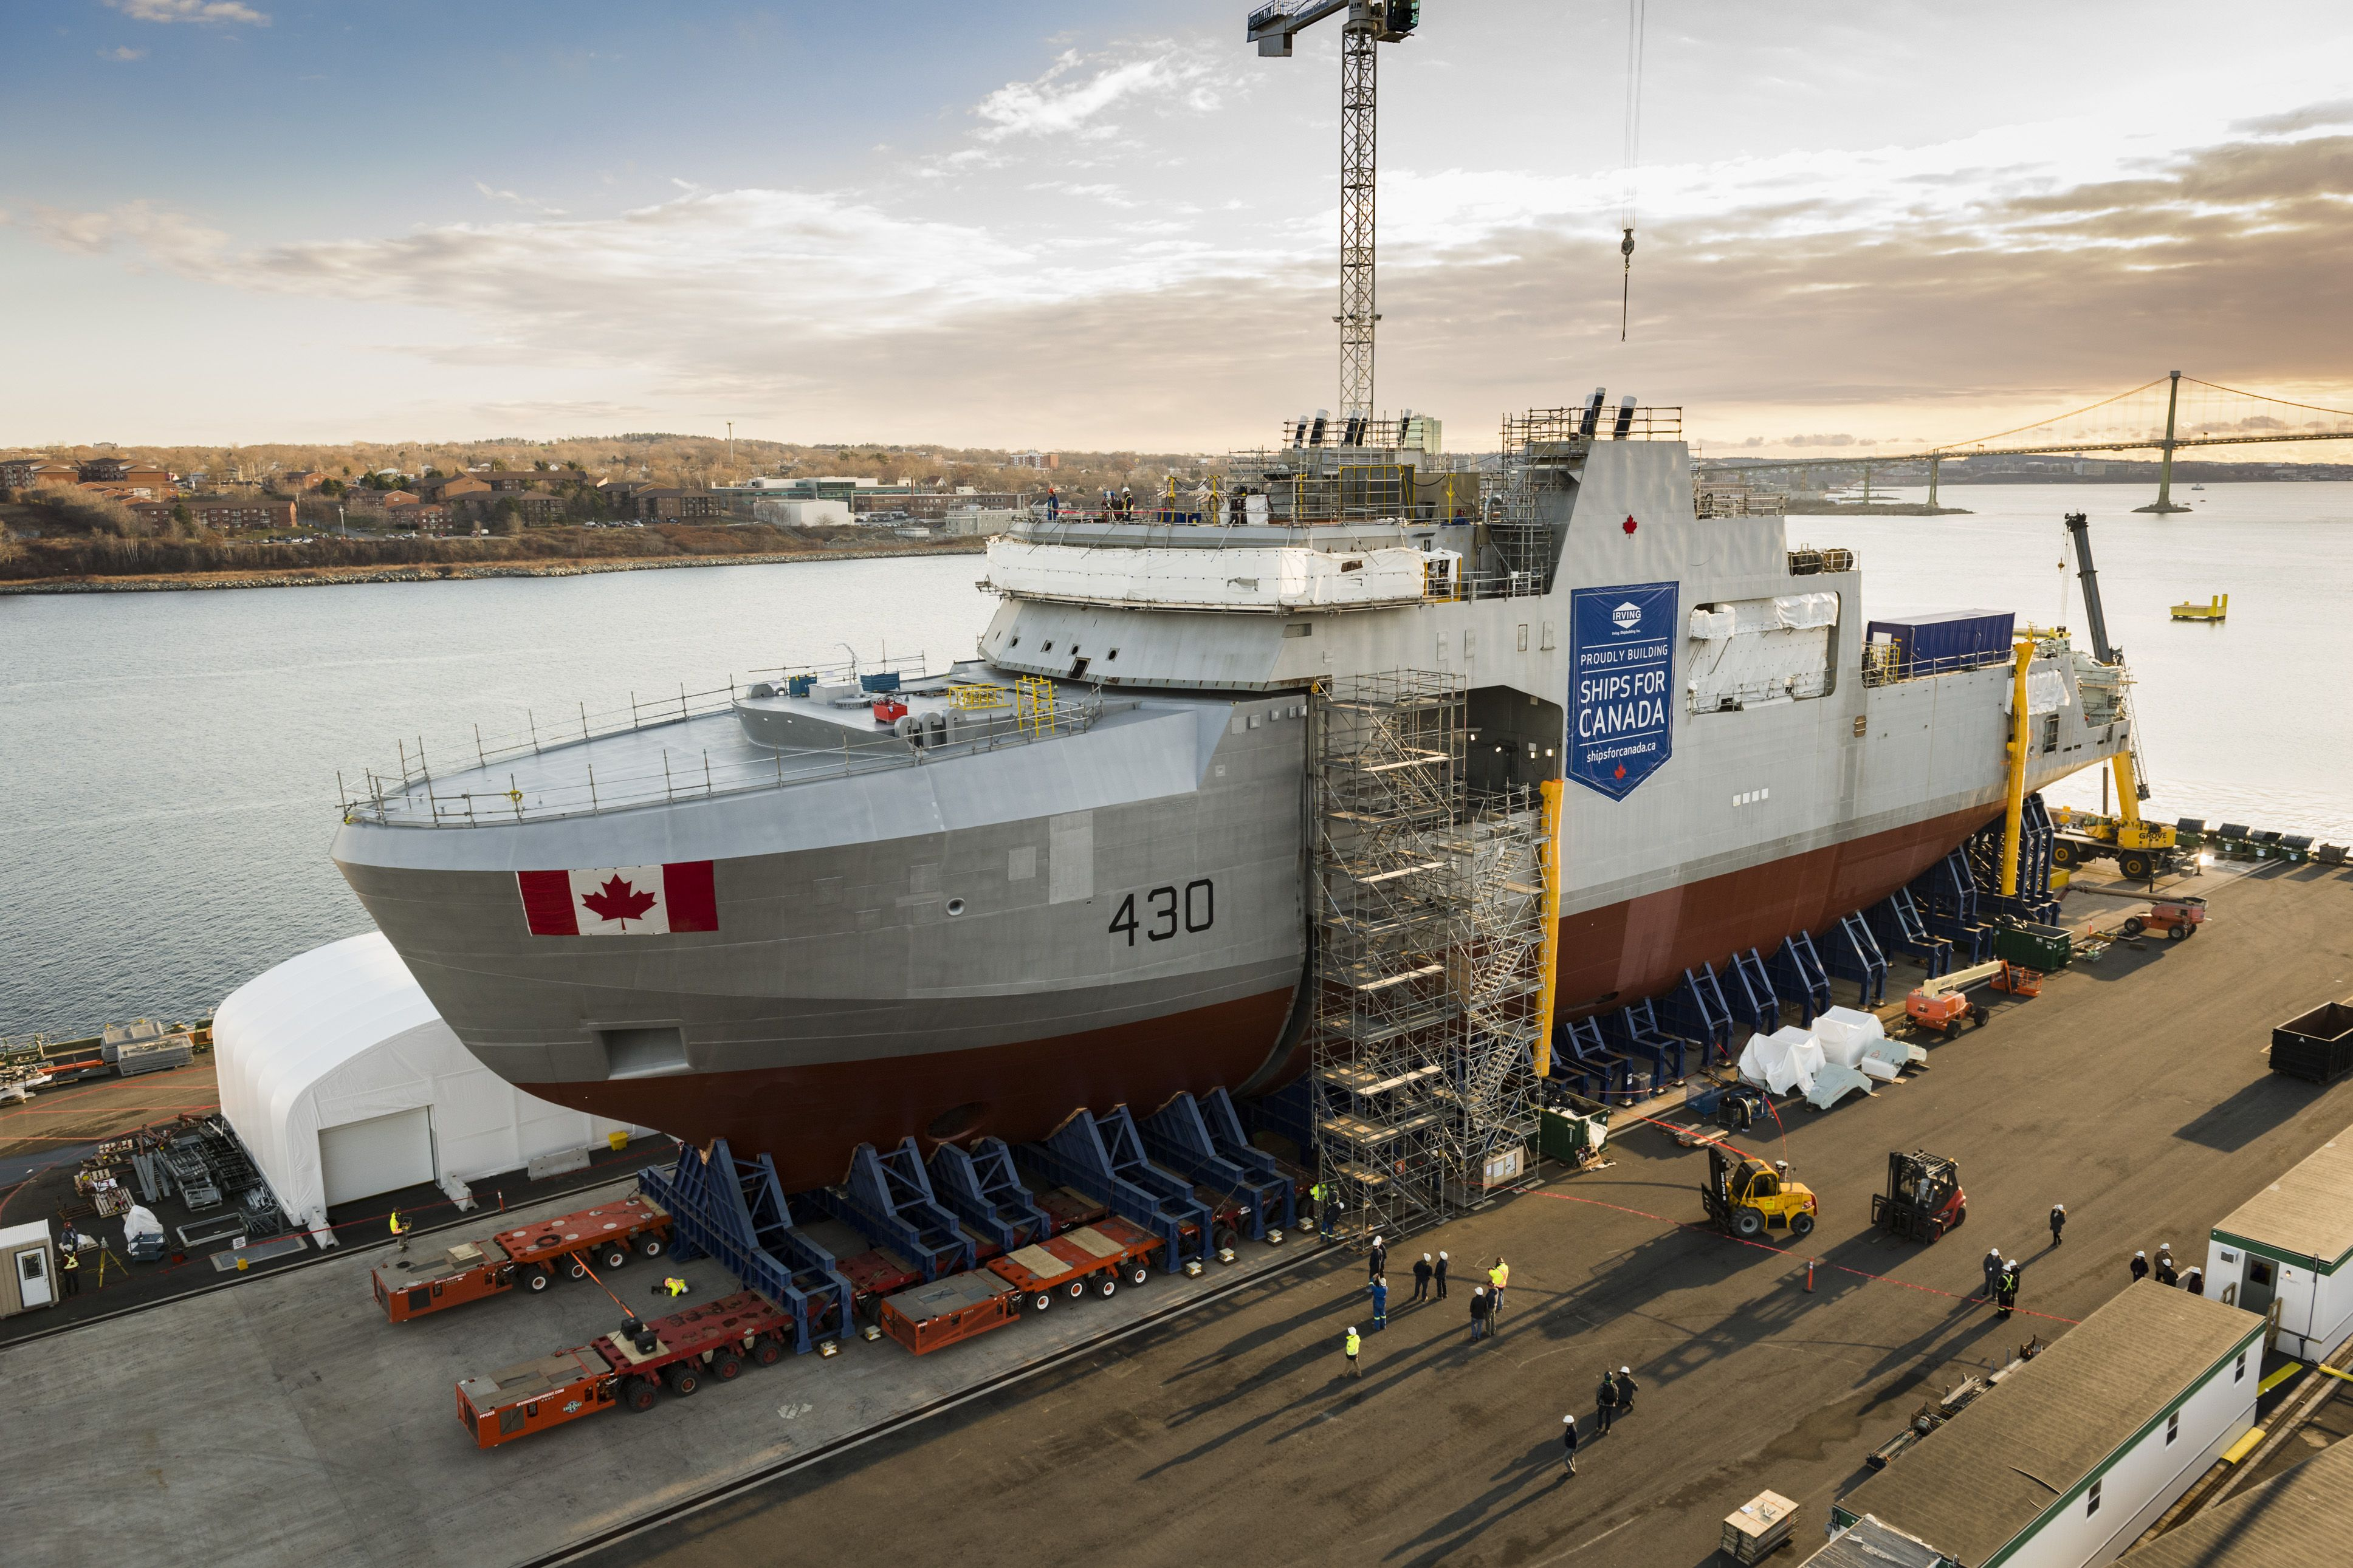 HMCS Harry DeWolf being fitted together ahead of planned